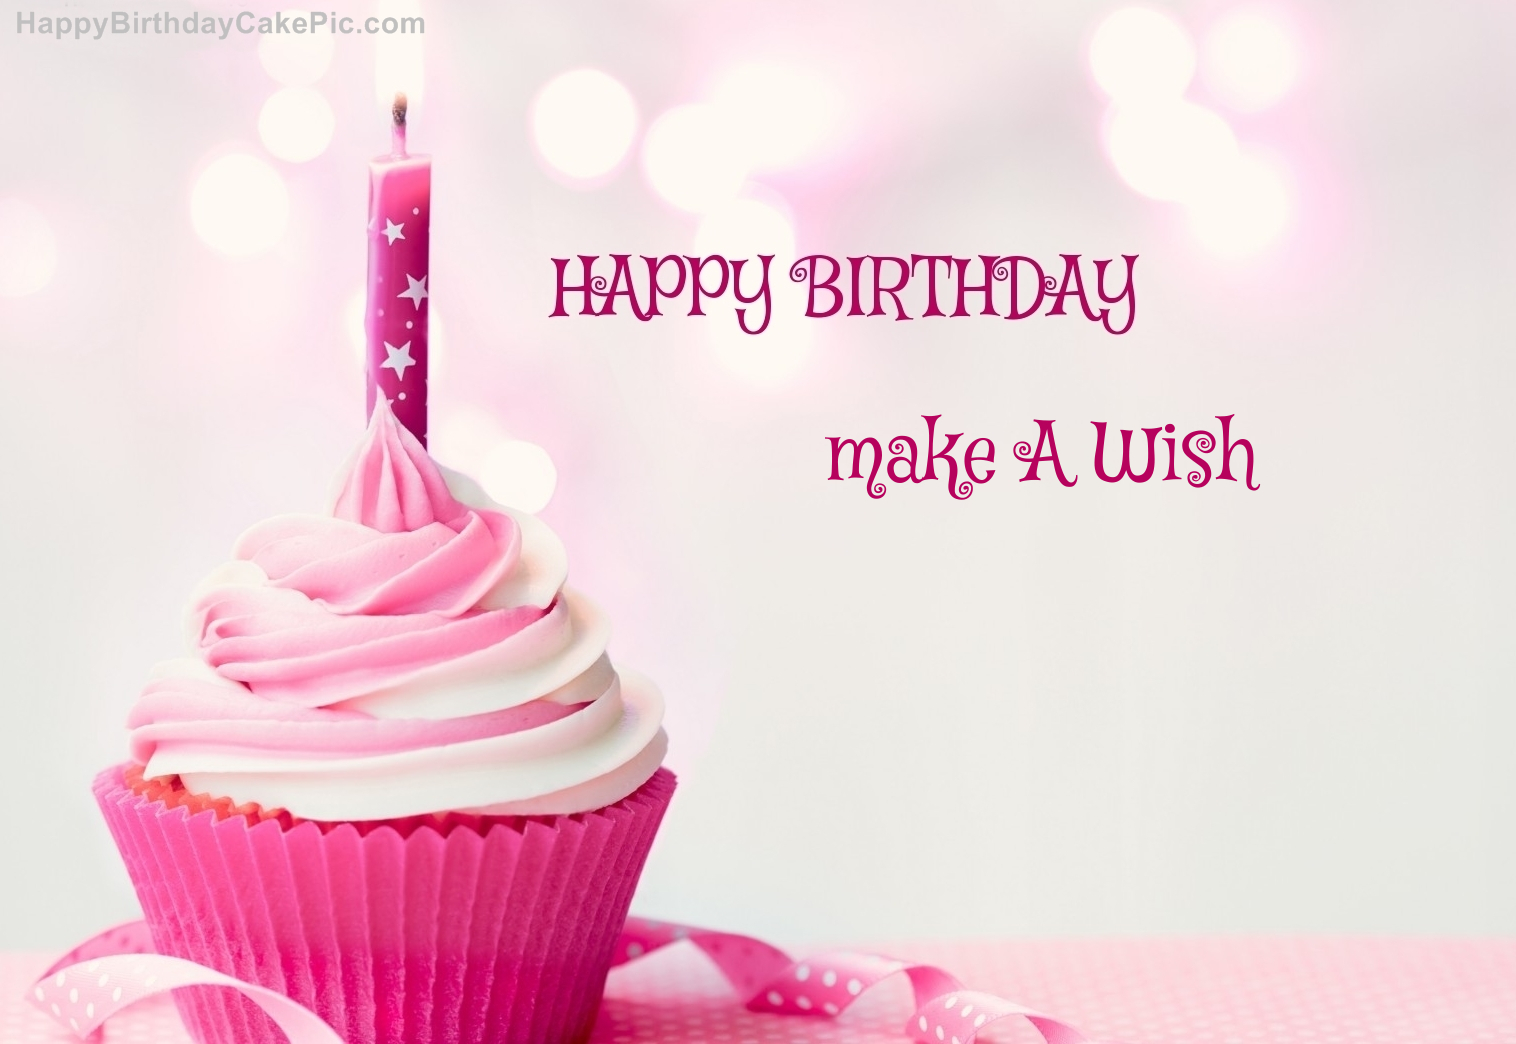 Happy Birthday Cupcake Candle Pink Cake For Make A Wish Happy Birthday Make A Wish